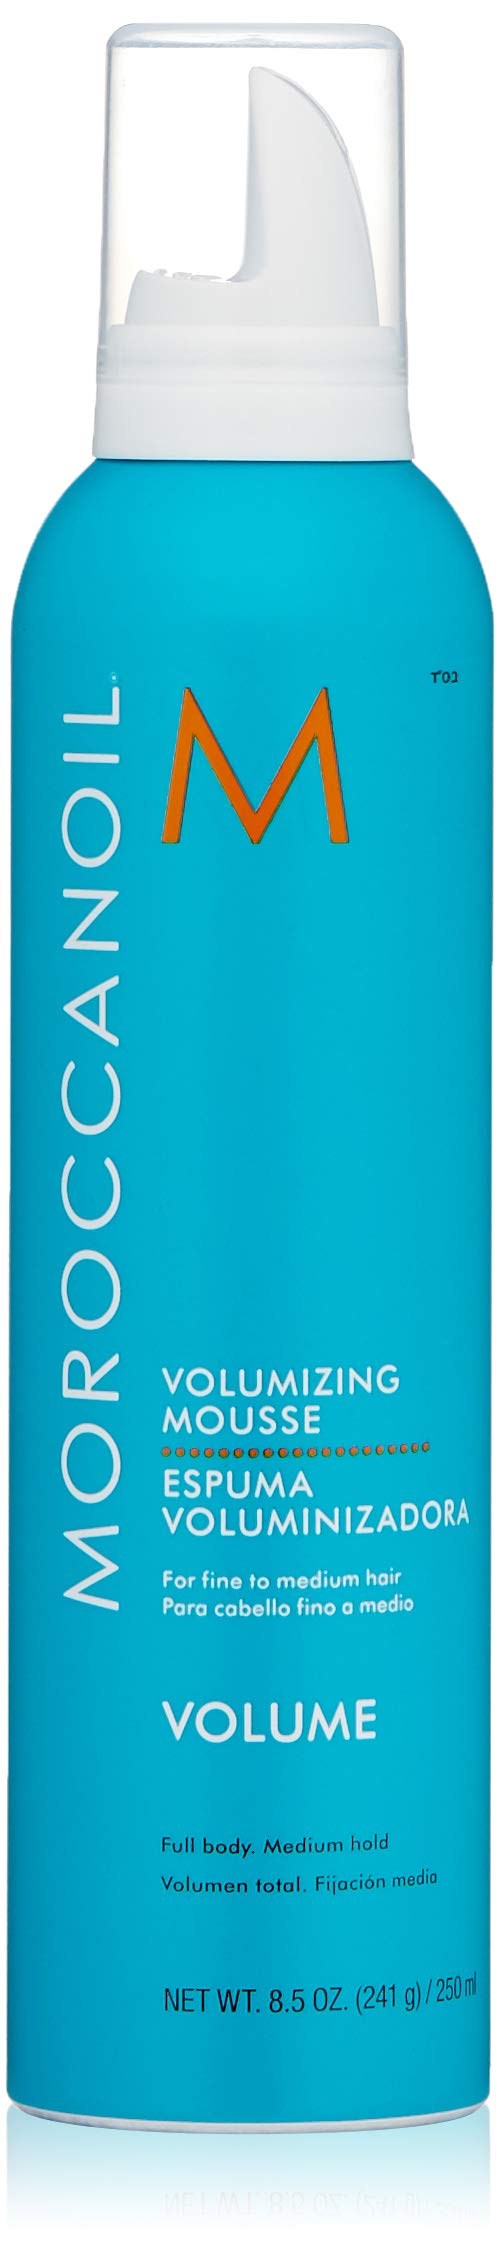 Moroccanoil Volumizing Mousse, 8.5 oz by MOROCCANOIL